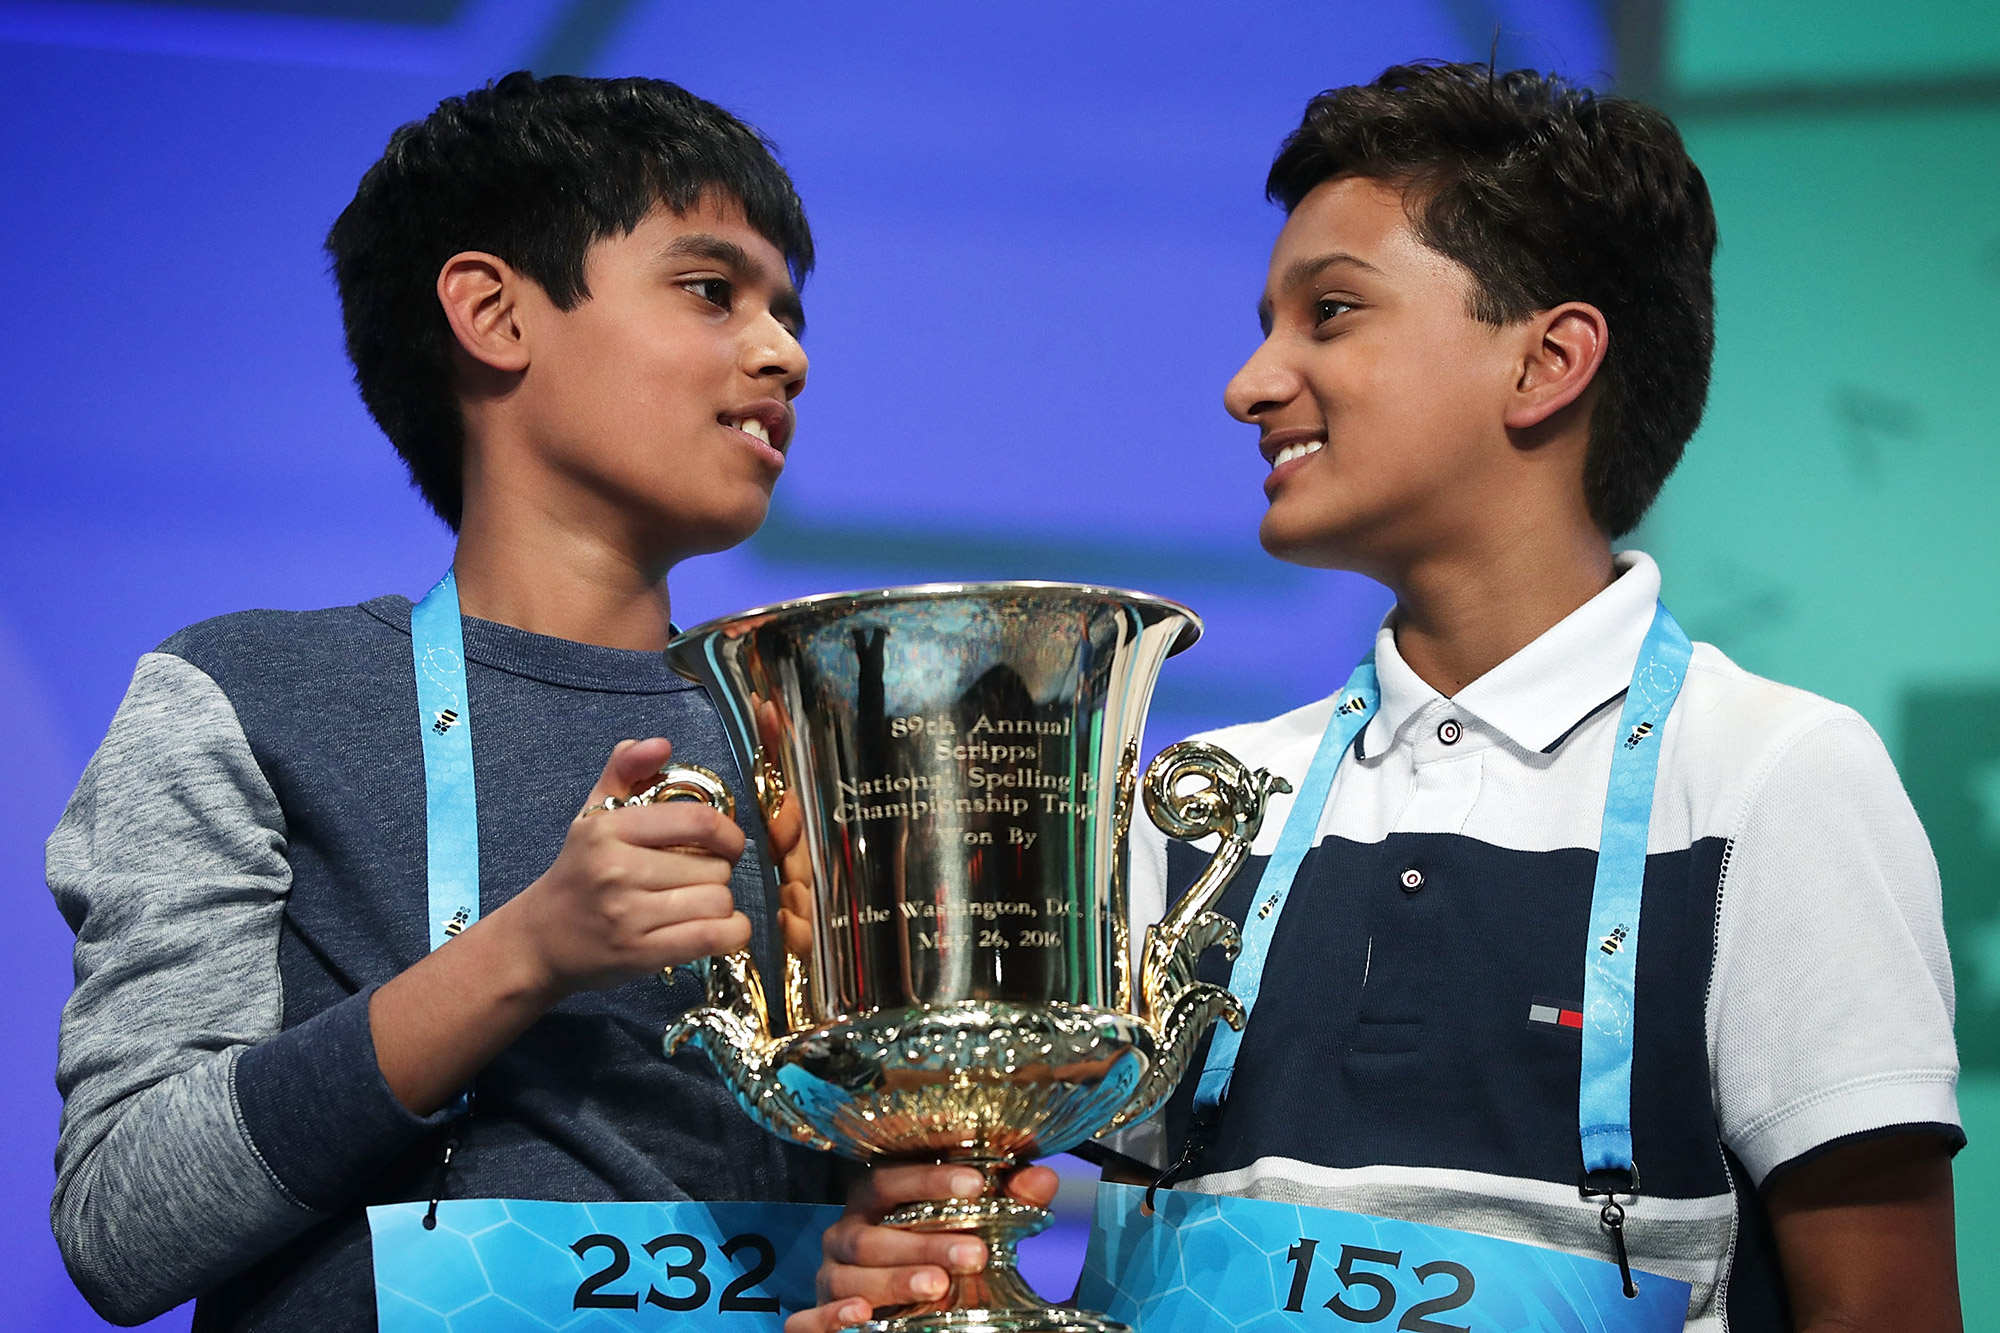 Spellers Nihar Saireddy Janga (L) of Austin, Texas and Jairam Jagadeesh Hathwar (R) of Painted Post, New York hold a trophy after the finals of the 2016 Scripps National Spelling Bee May 26, 2016 in National Harbor, Maryland